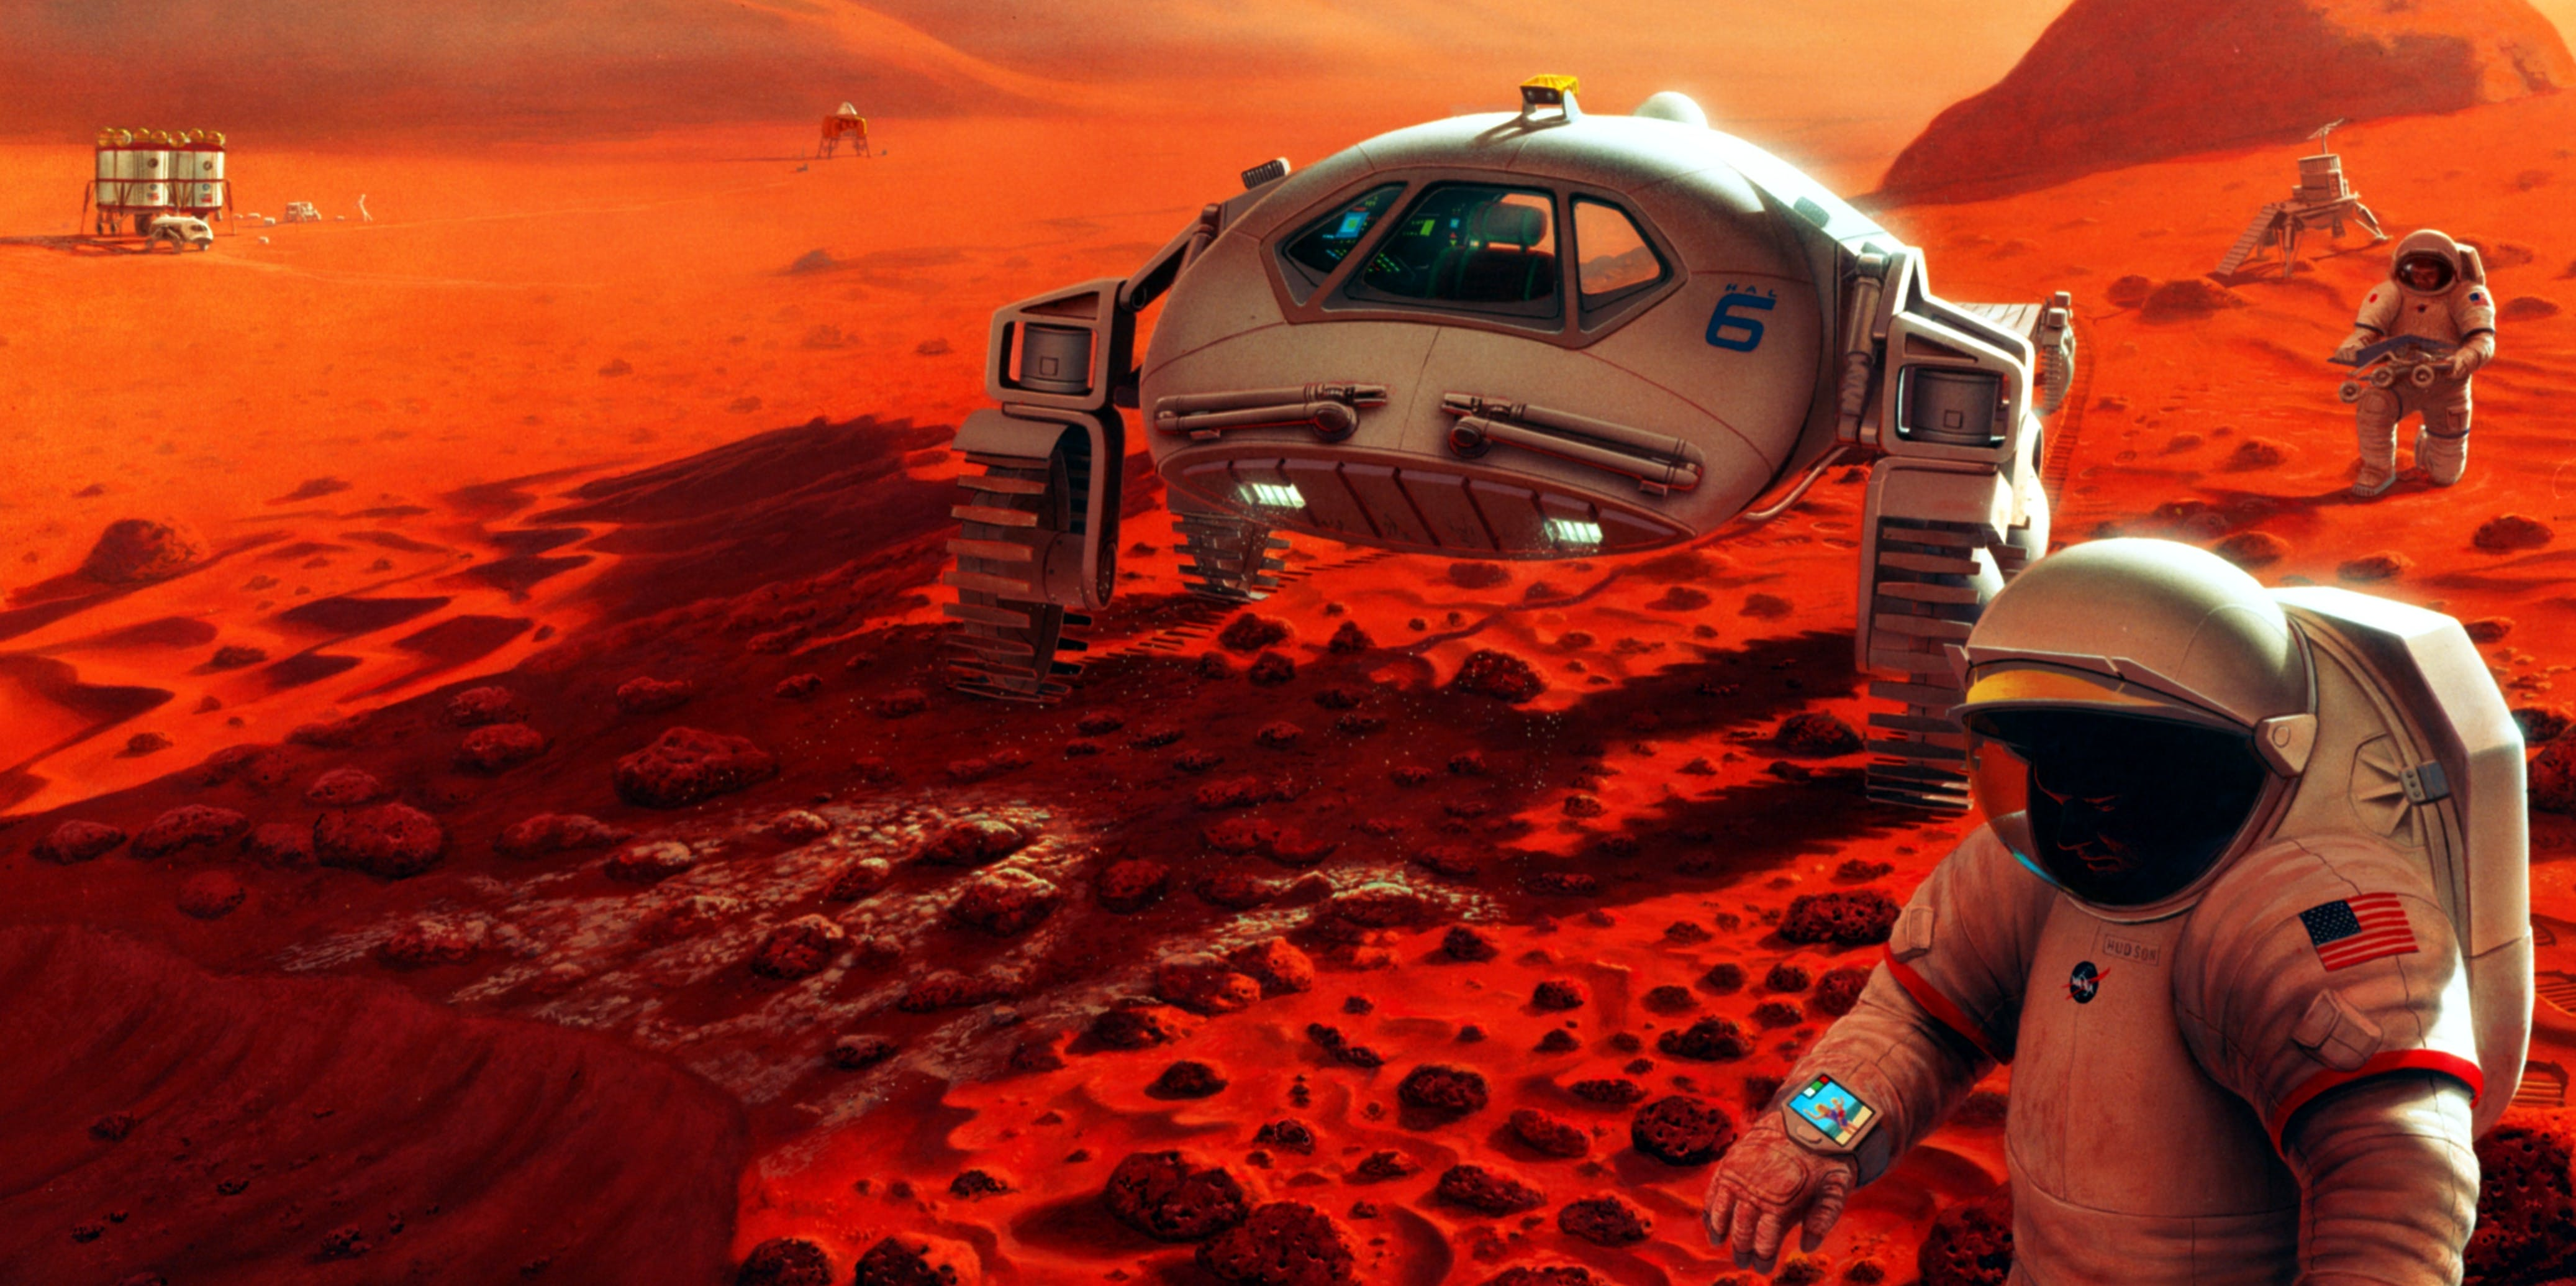 Curious Kids: why can't we put people on Mars? - The Conversation UK